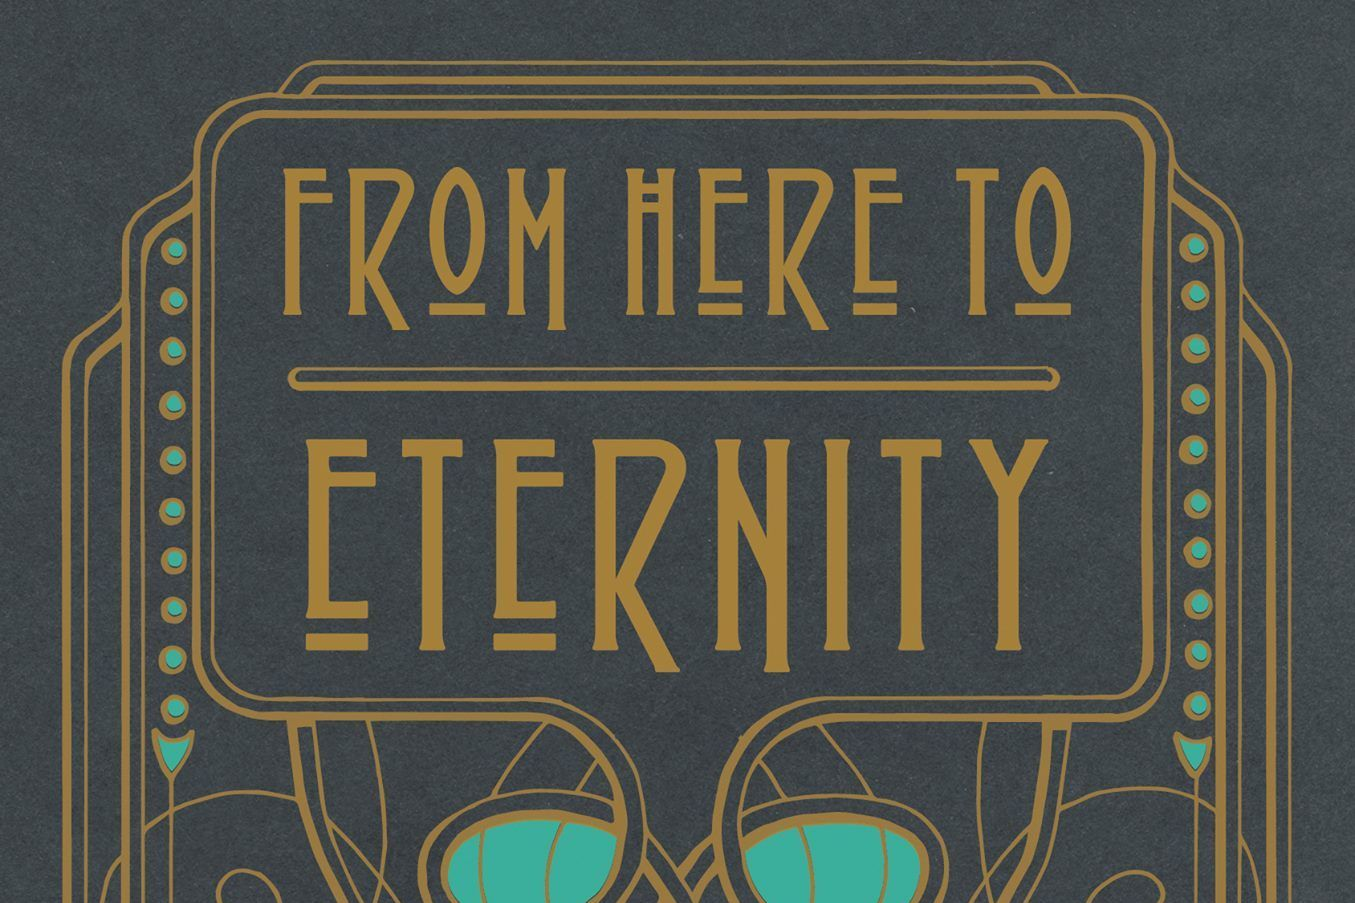 7. from here to eternity fukyfh